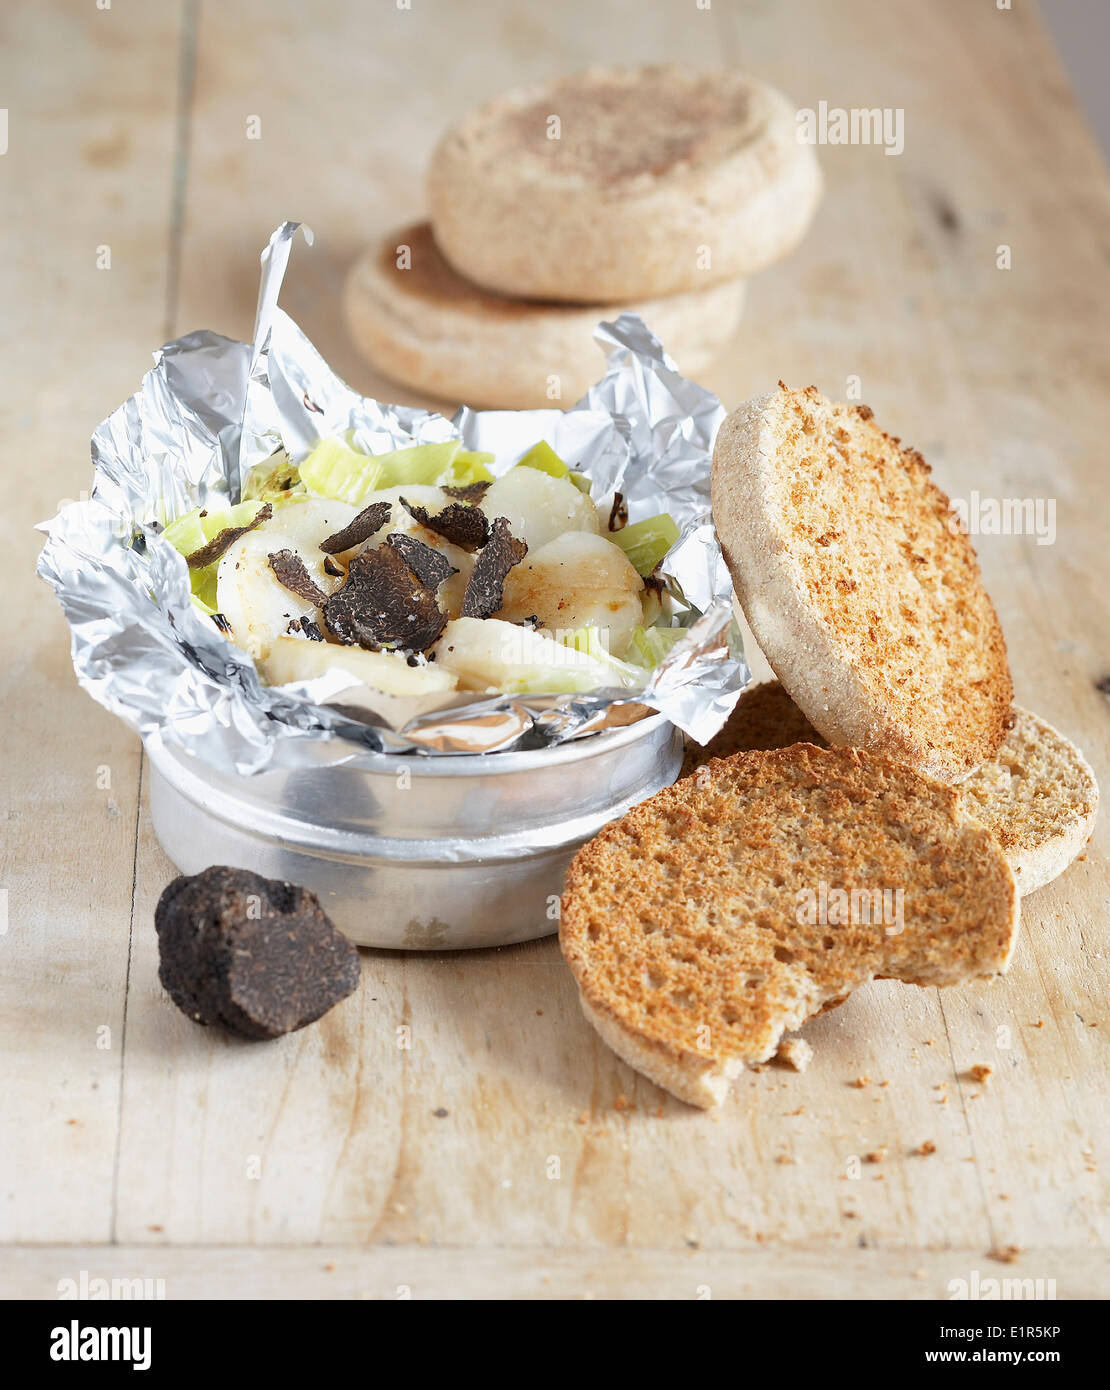 Leek and scallop fondue with thinly sliced truffles,toasted muffins - Stock Image